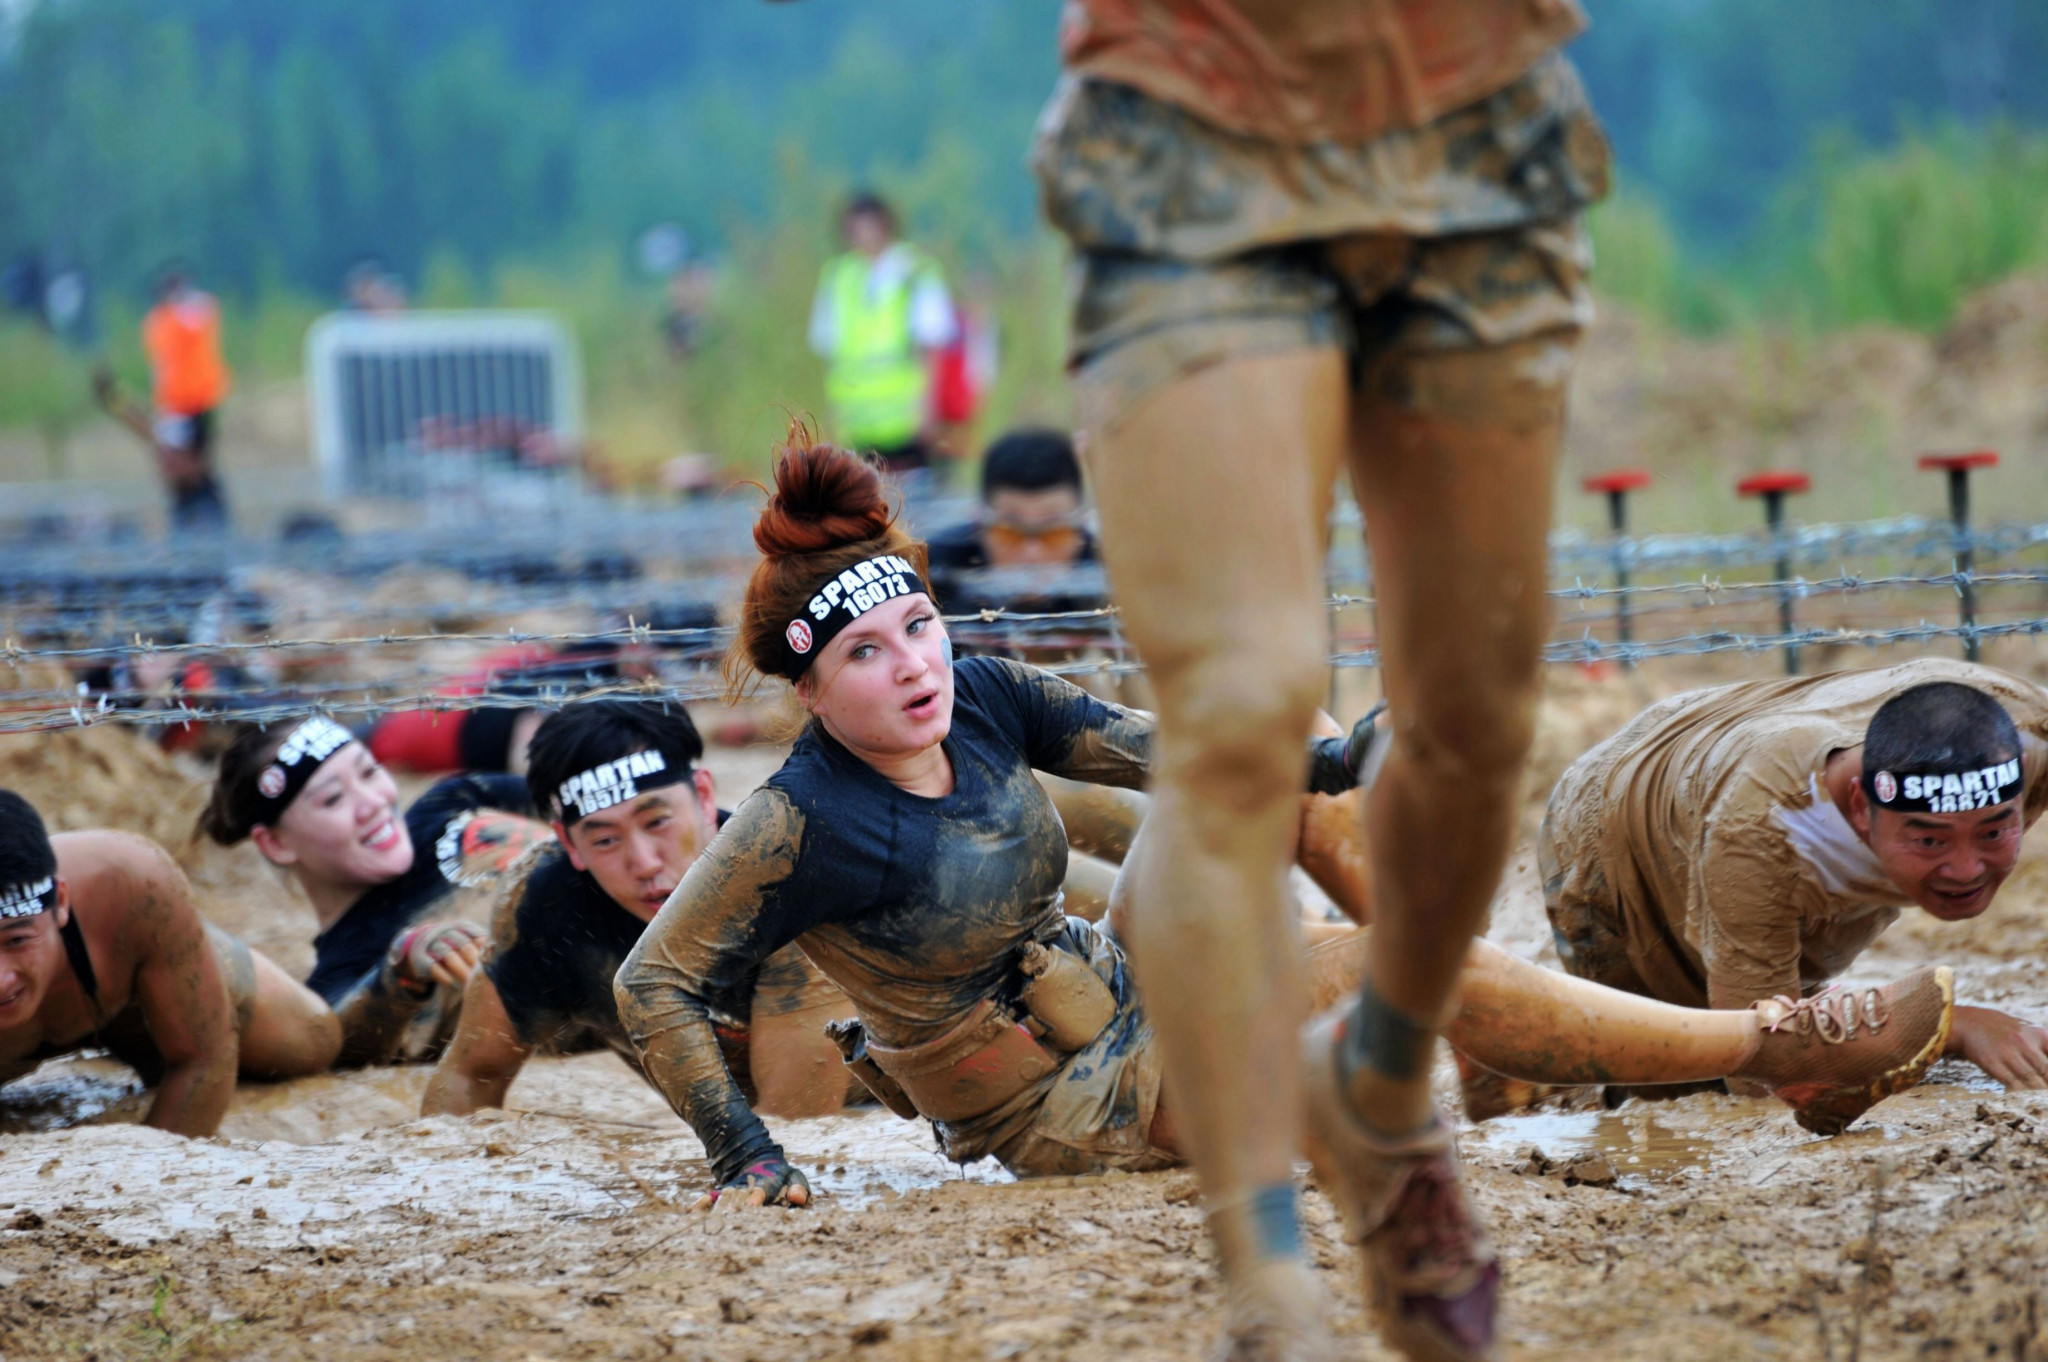 World Obstacle granted GAISF observer status